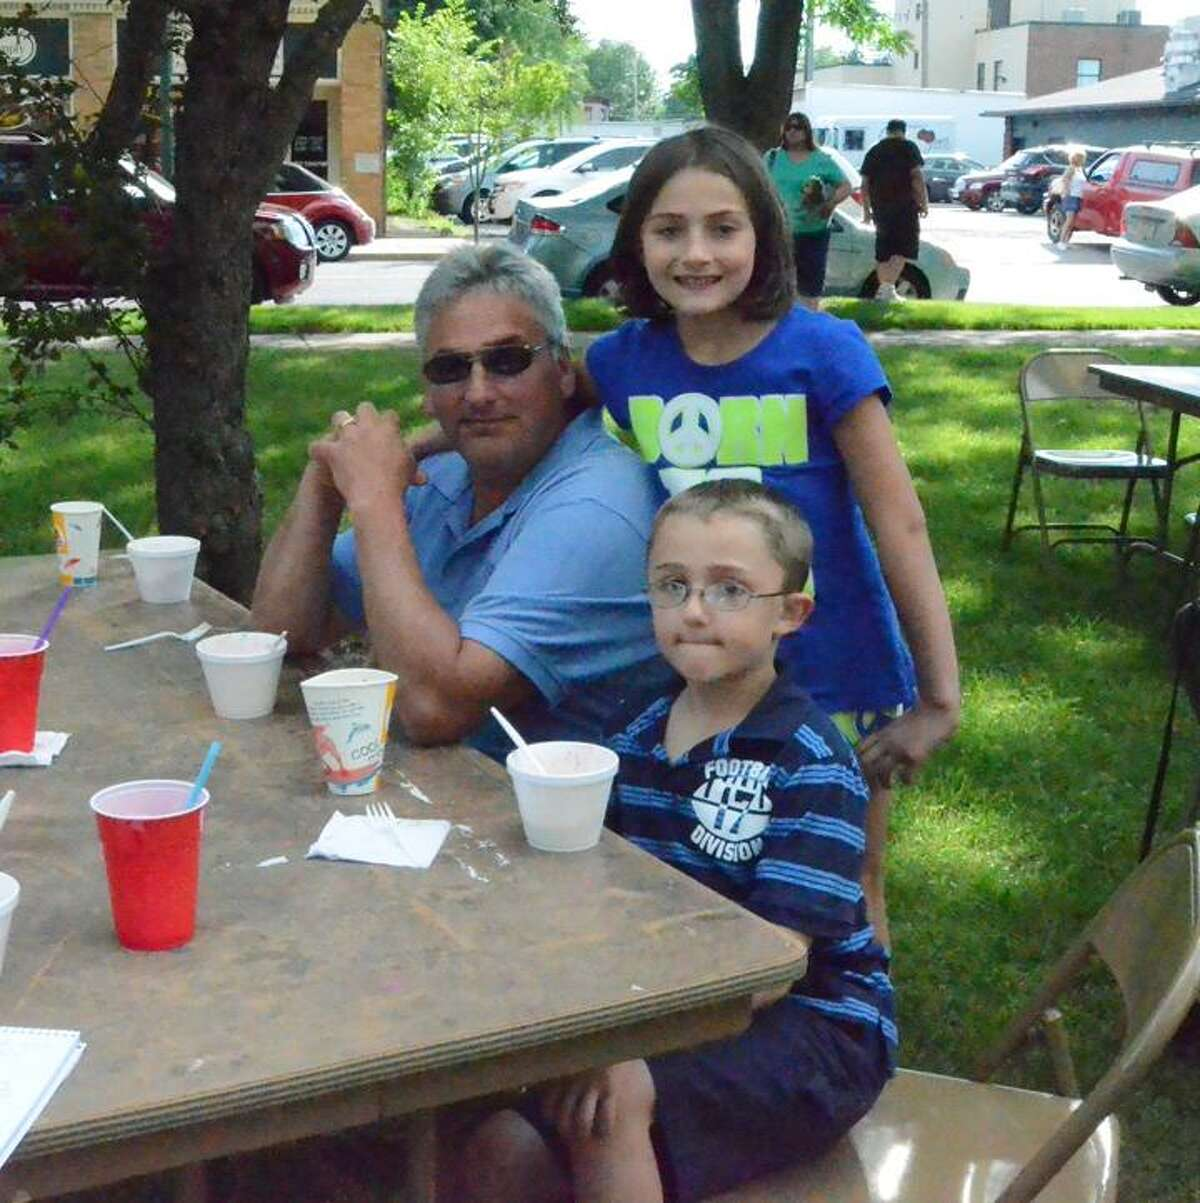 Leah McDonald/Oneida Daily Dispatch Michael Mazzullo, Alexis Mazzullo and Anthony Mazzullo at the Oneida Elks Club's annual Strawberry Festival Tuesday, June 18, 2013.